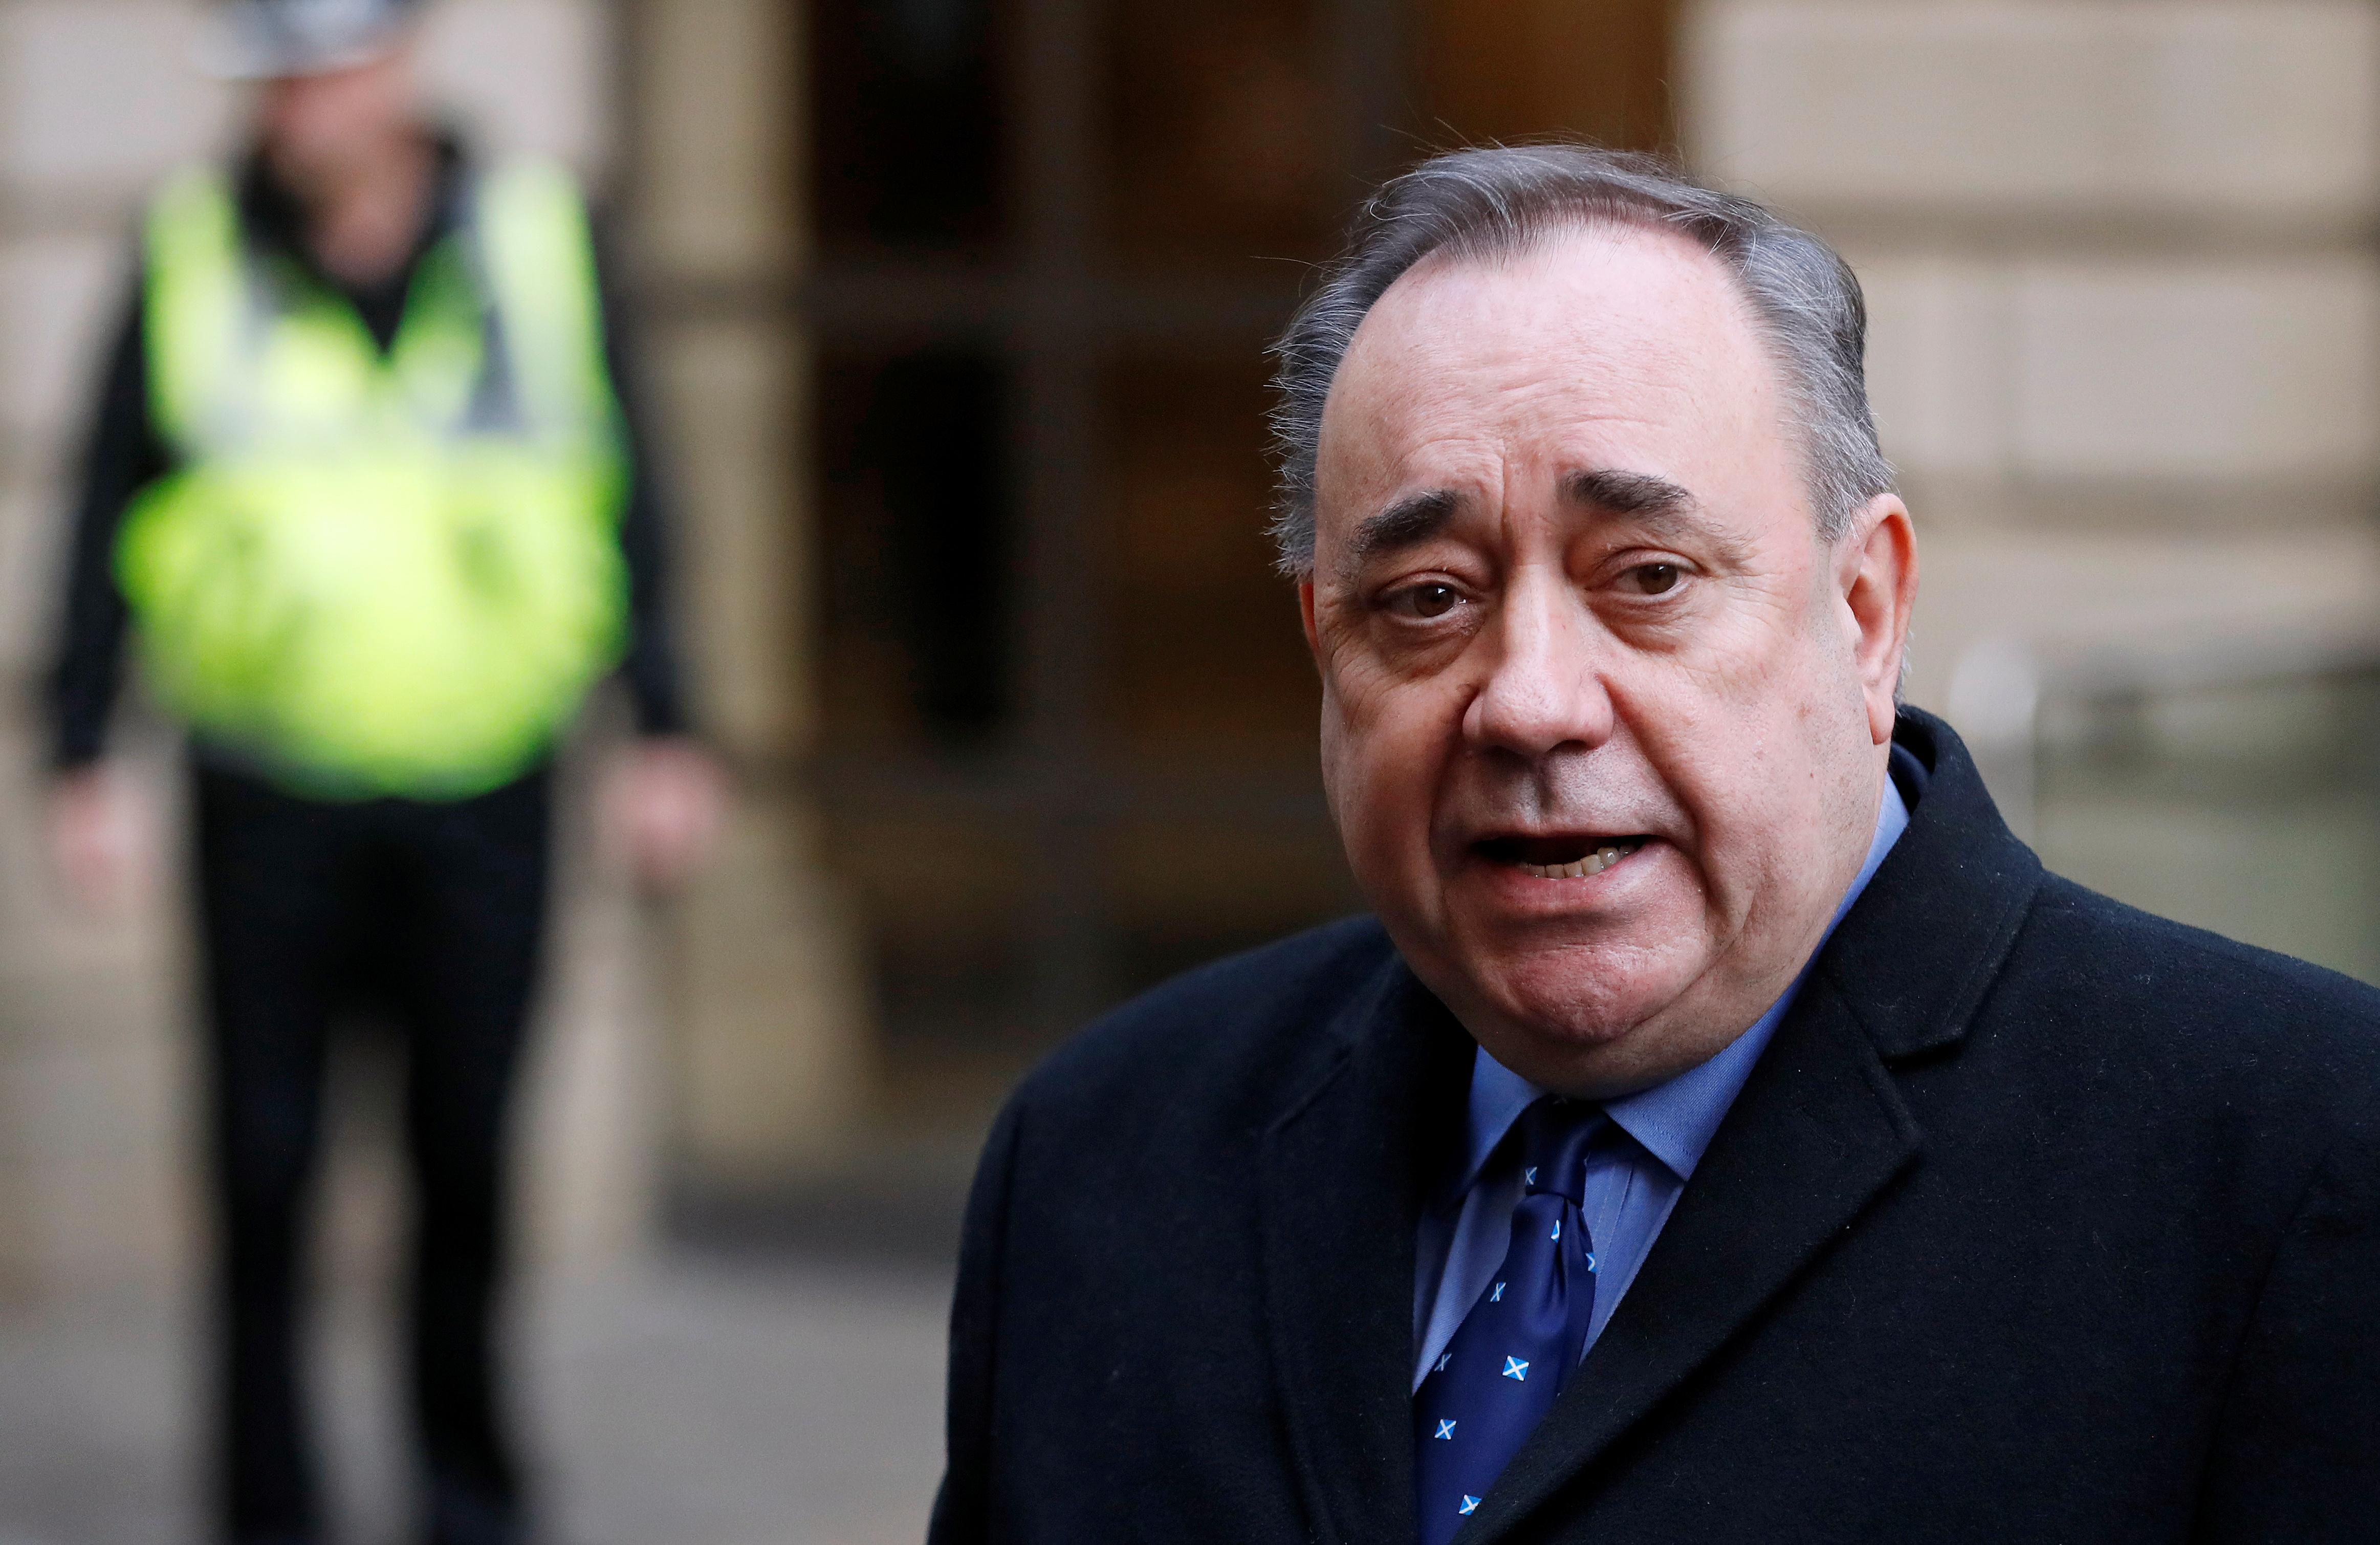 Alex Salmond 'lay on top of woman and tried to rape her', court hears